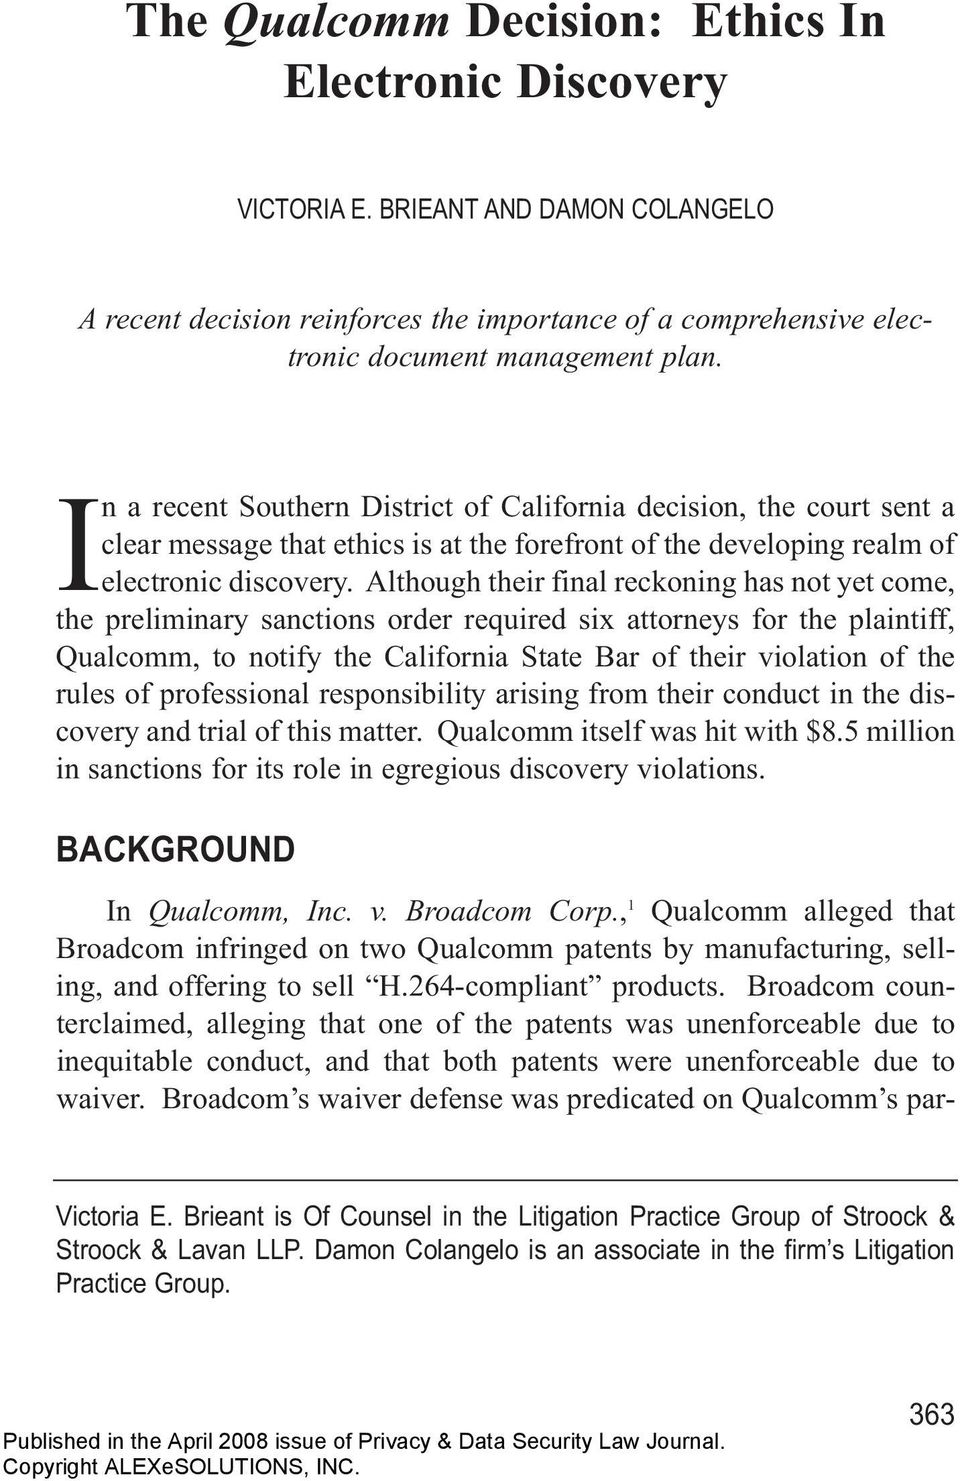 Although their final reckoning has not yet come, the preliminary sanctions order required six attorneys for the plaintiff, Qualcomm, to notify the California State Bar of their violation of the rules